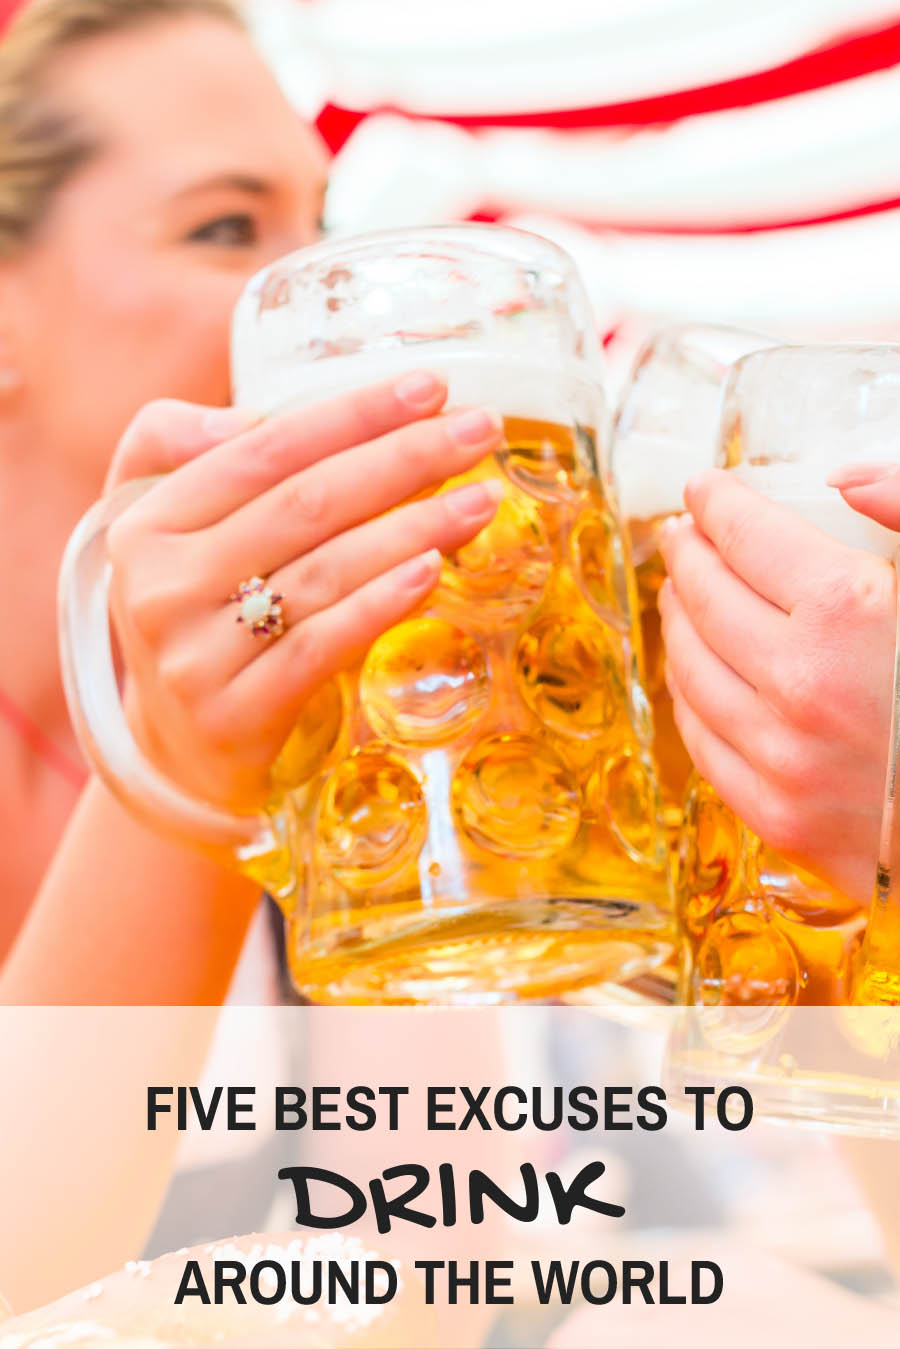 Five Best Excuses to Drink Around the World